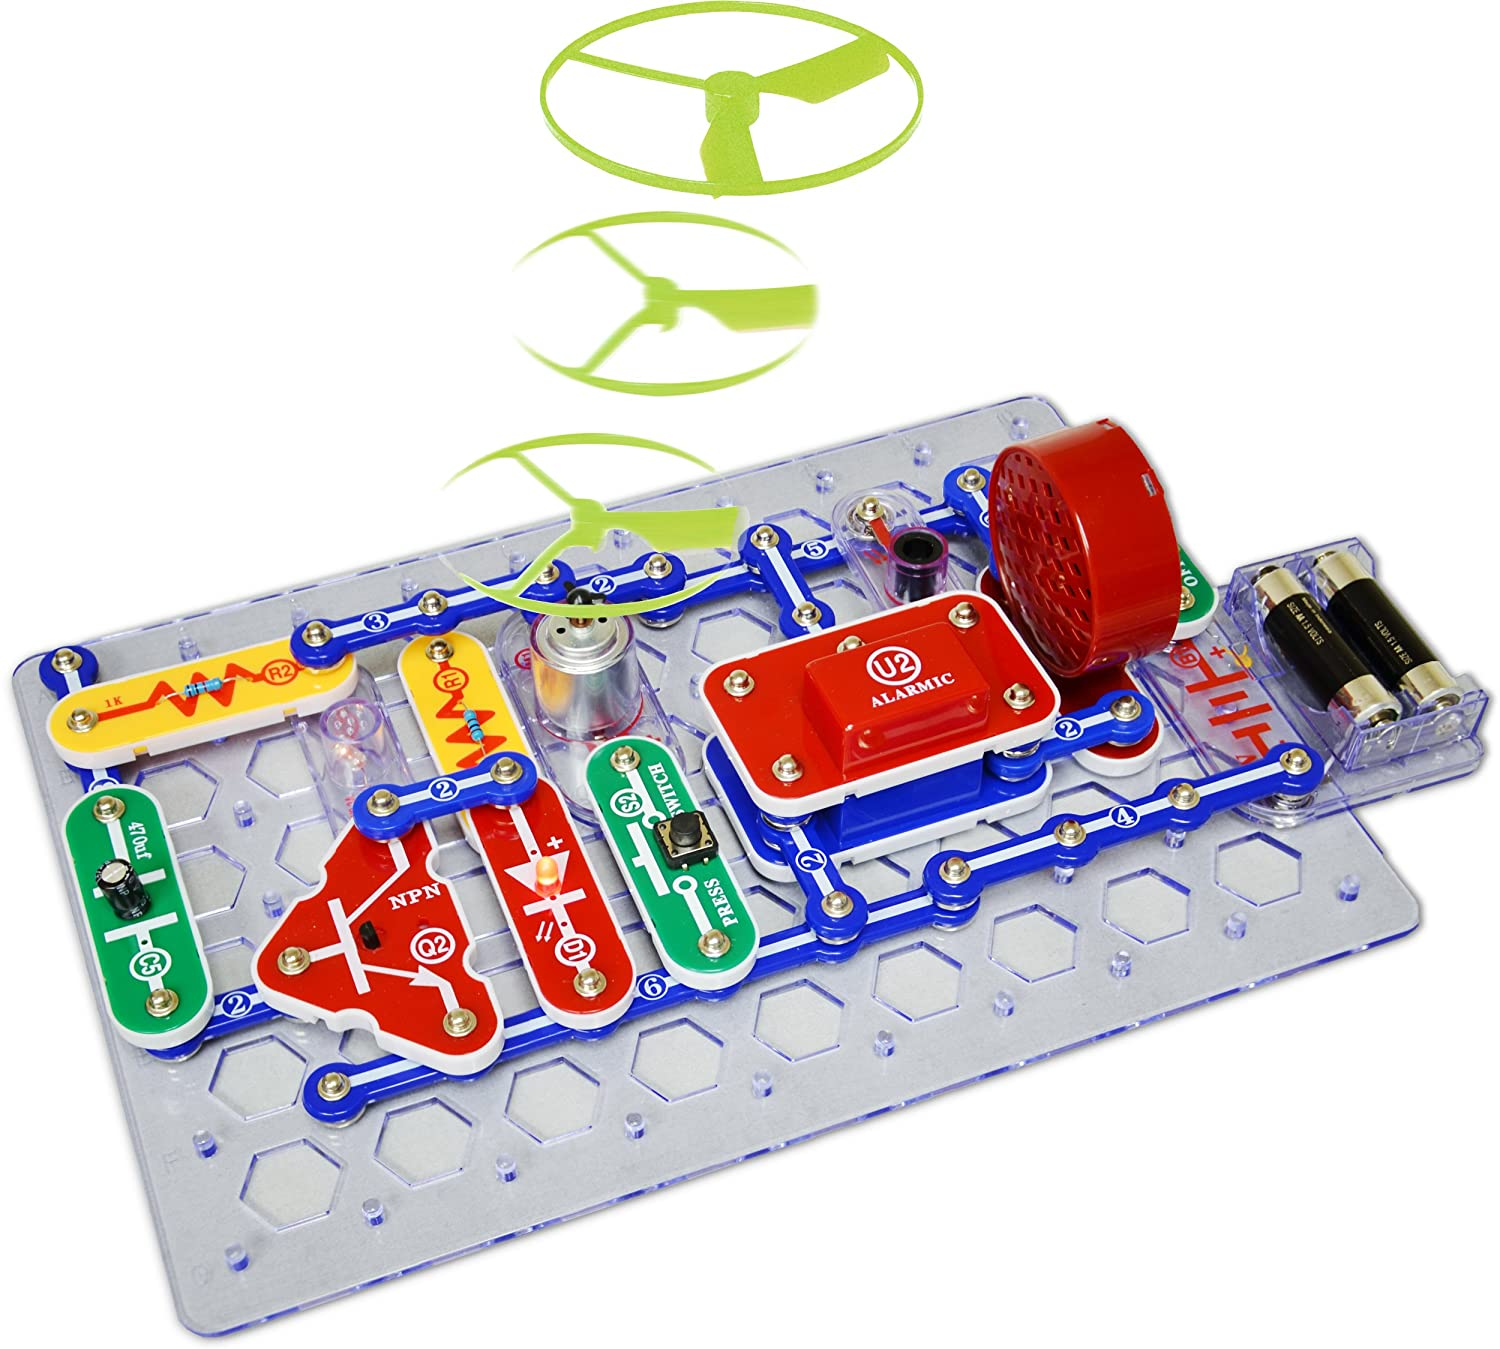 Buy Elenco Circuit Maker 125 Skill Builder Electronics Discovery Kit Electrical Science Project Online At Low Prices In India